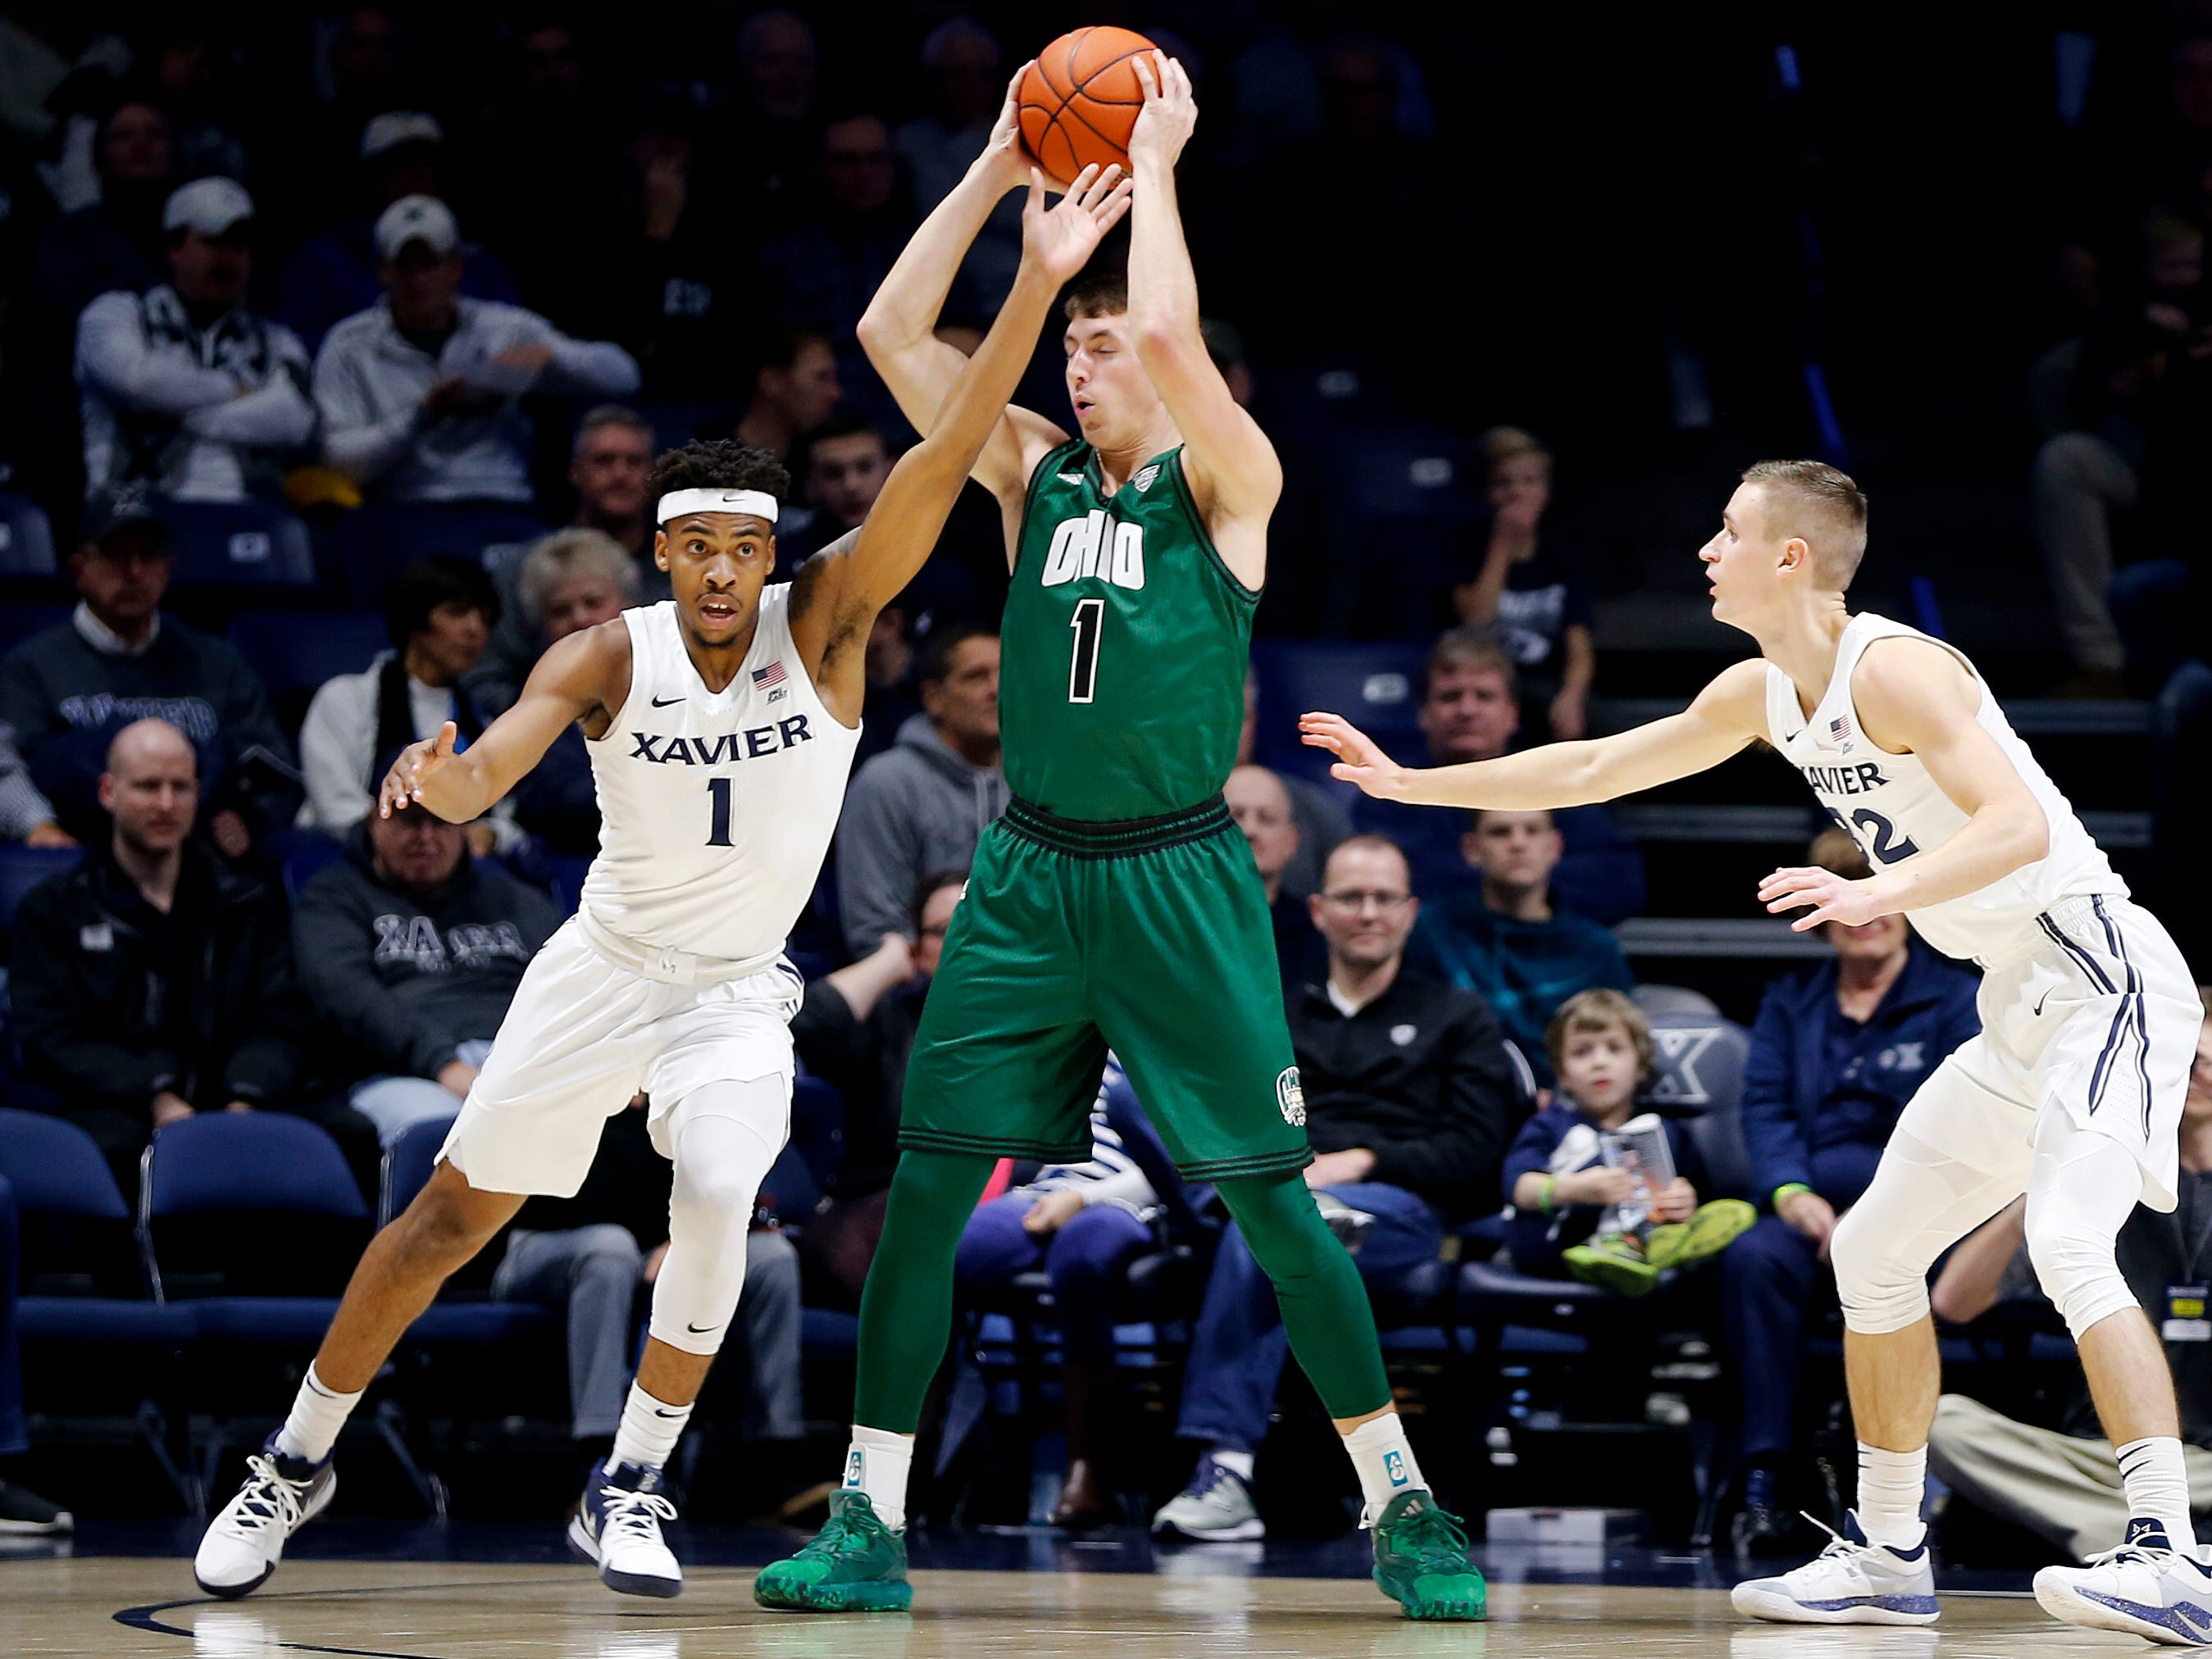 Xavier Musketeers guard Paul Scruggs (1), left, and Ryan Welage (32) double-team Ohio Bobcats forward Jason Carter (1) during the first halt at the Cintas Center December 5, 2018